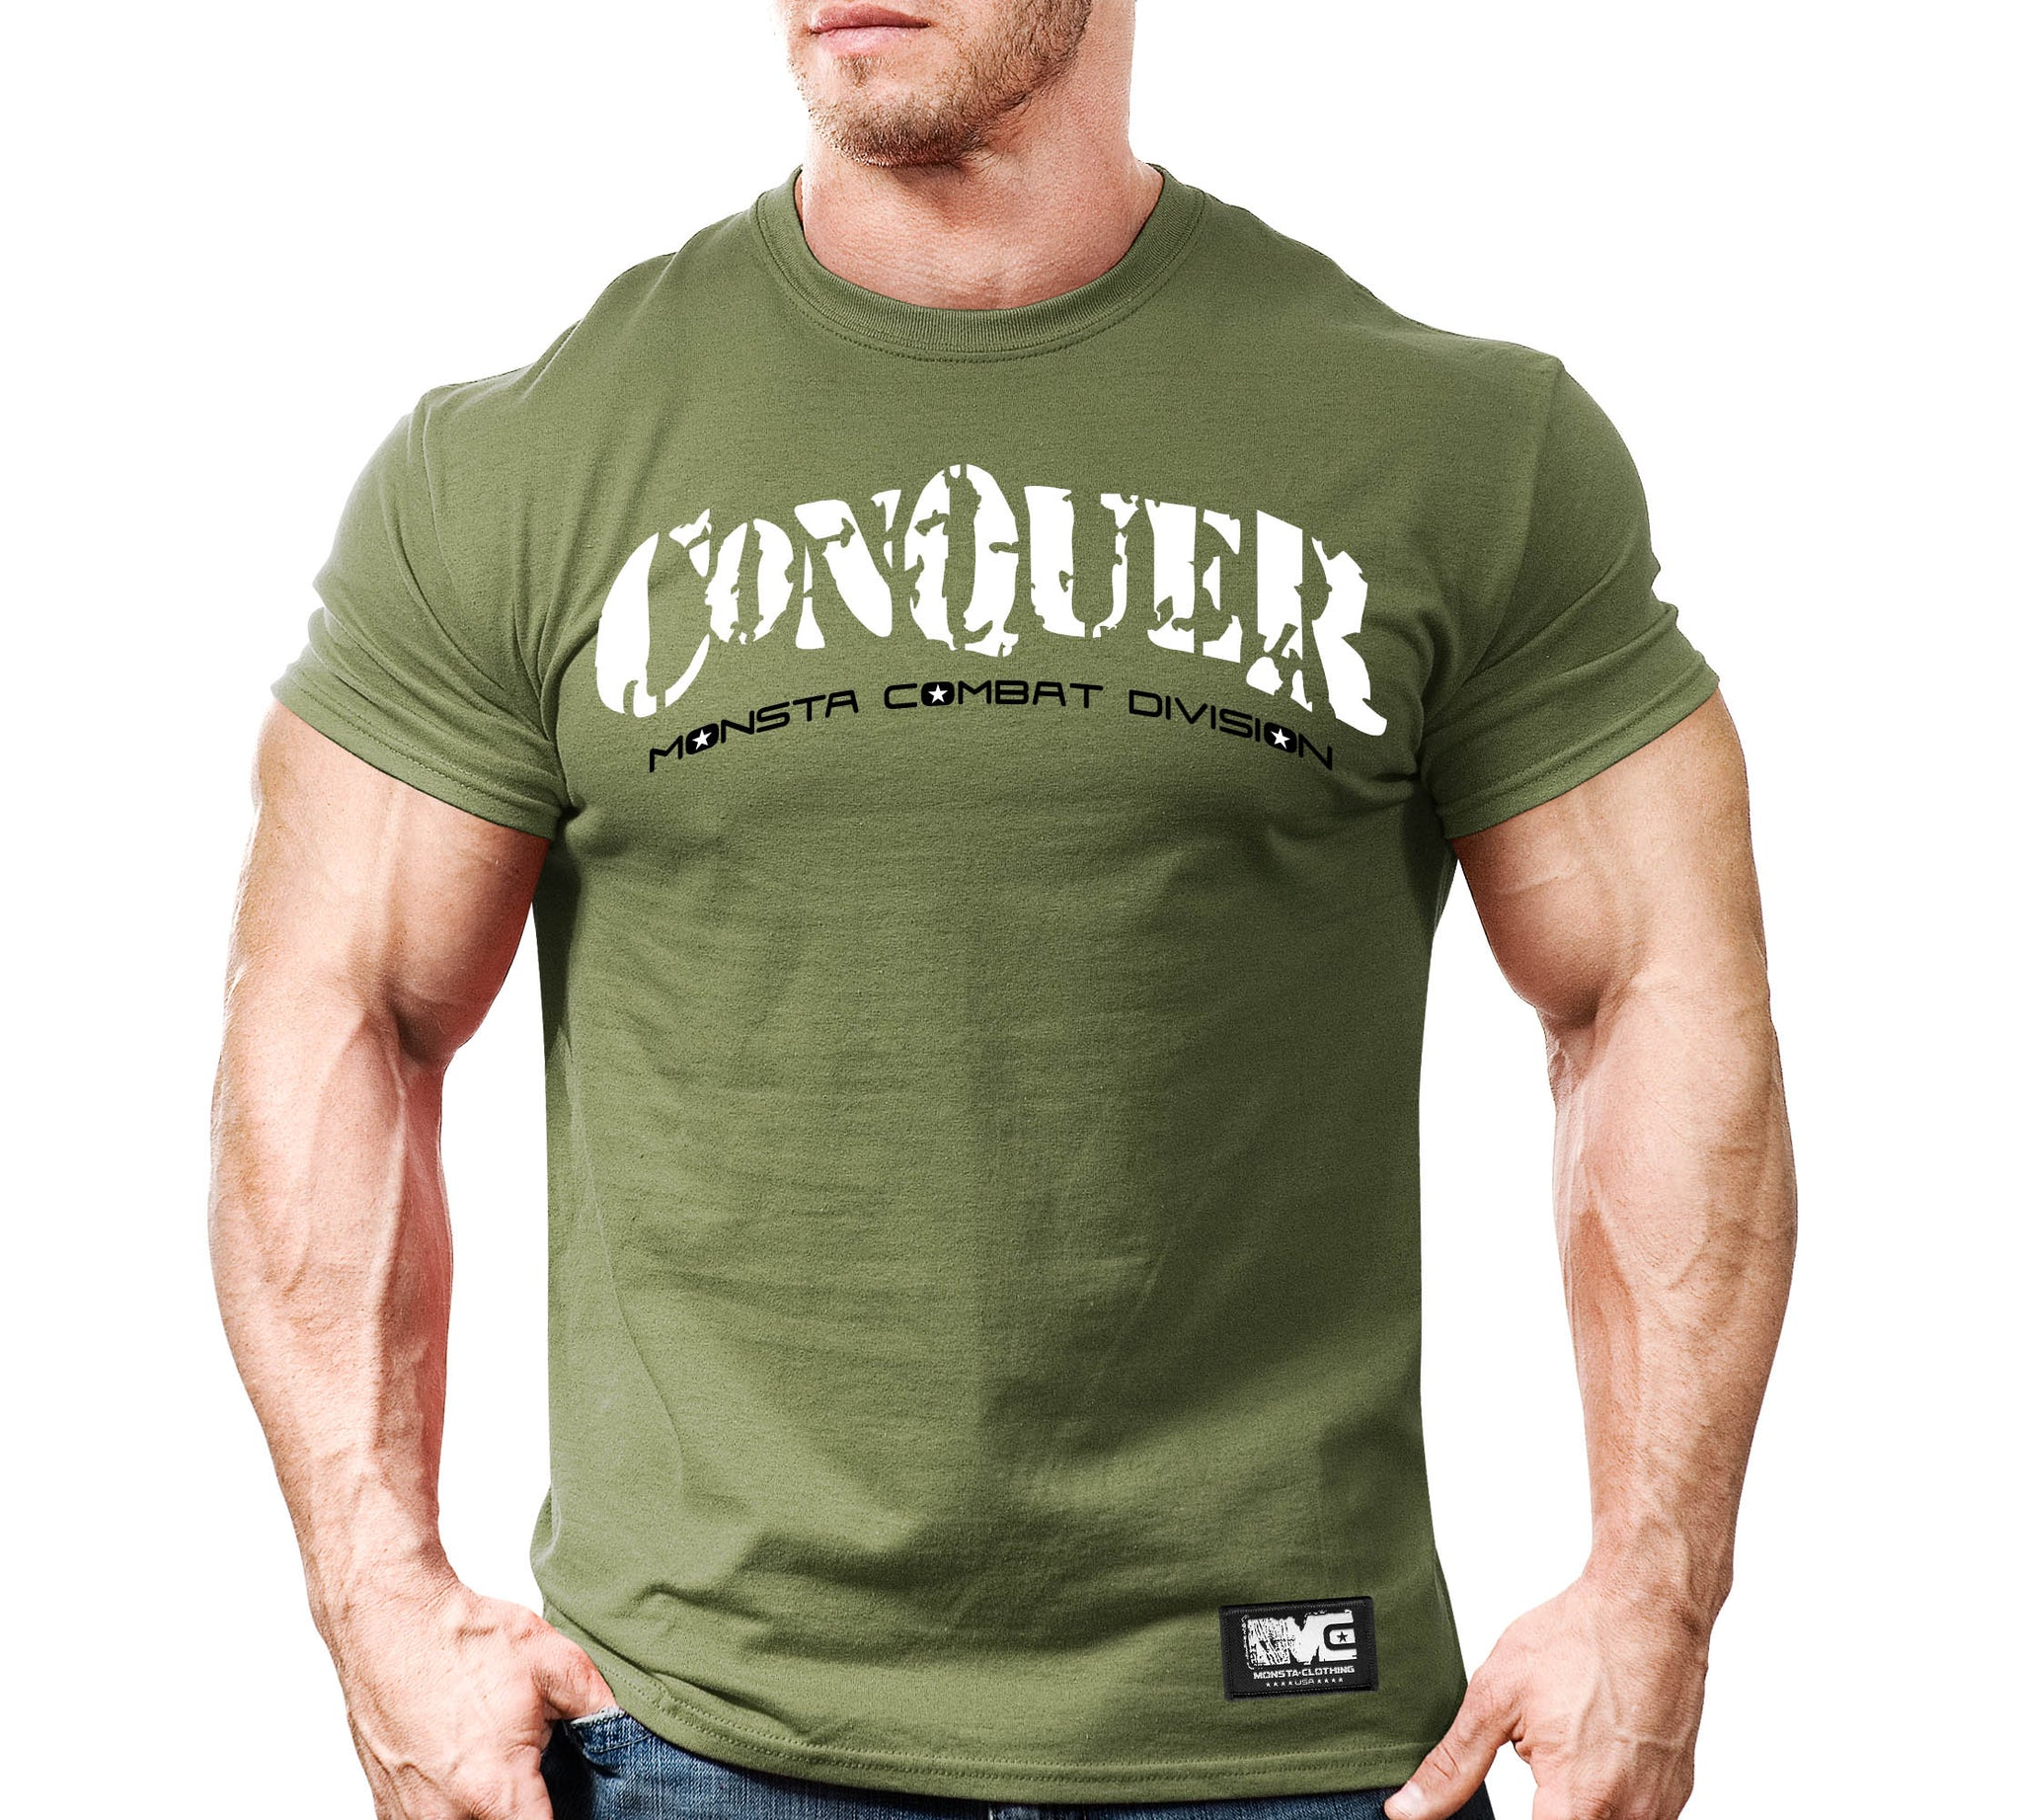 Tee: CONQUER Overcome The Pain